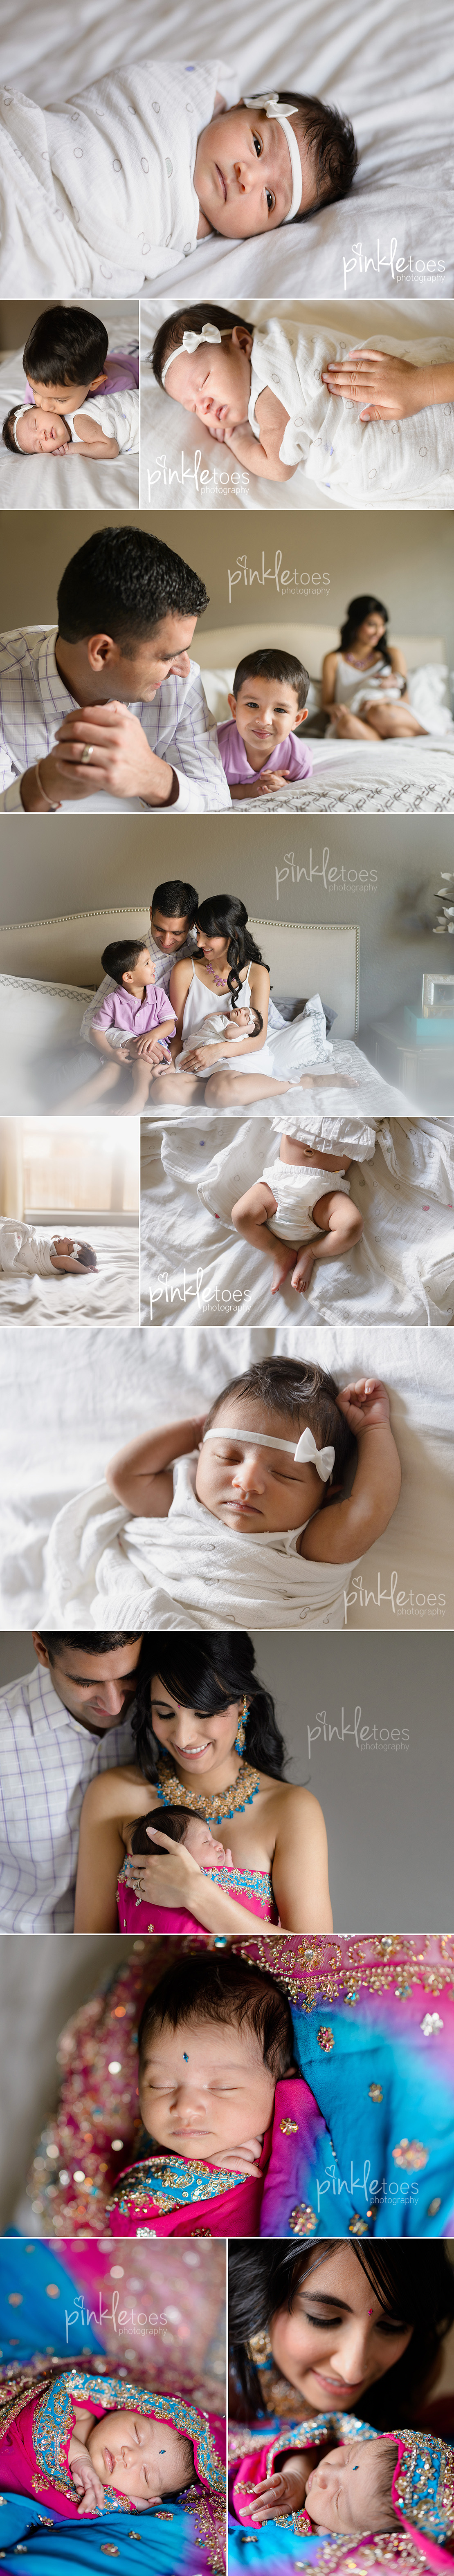 md-pinkle-toes-austin-newborn-baby-photographer-jeweled-indian-sari